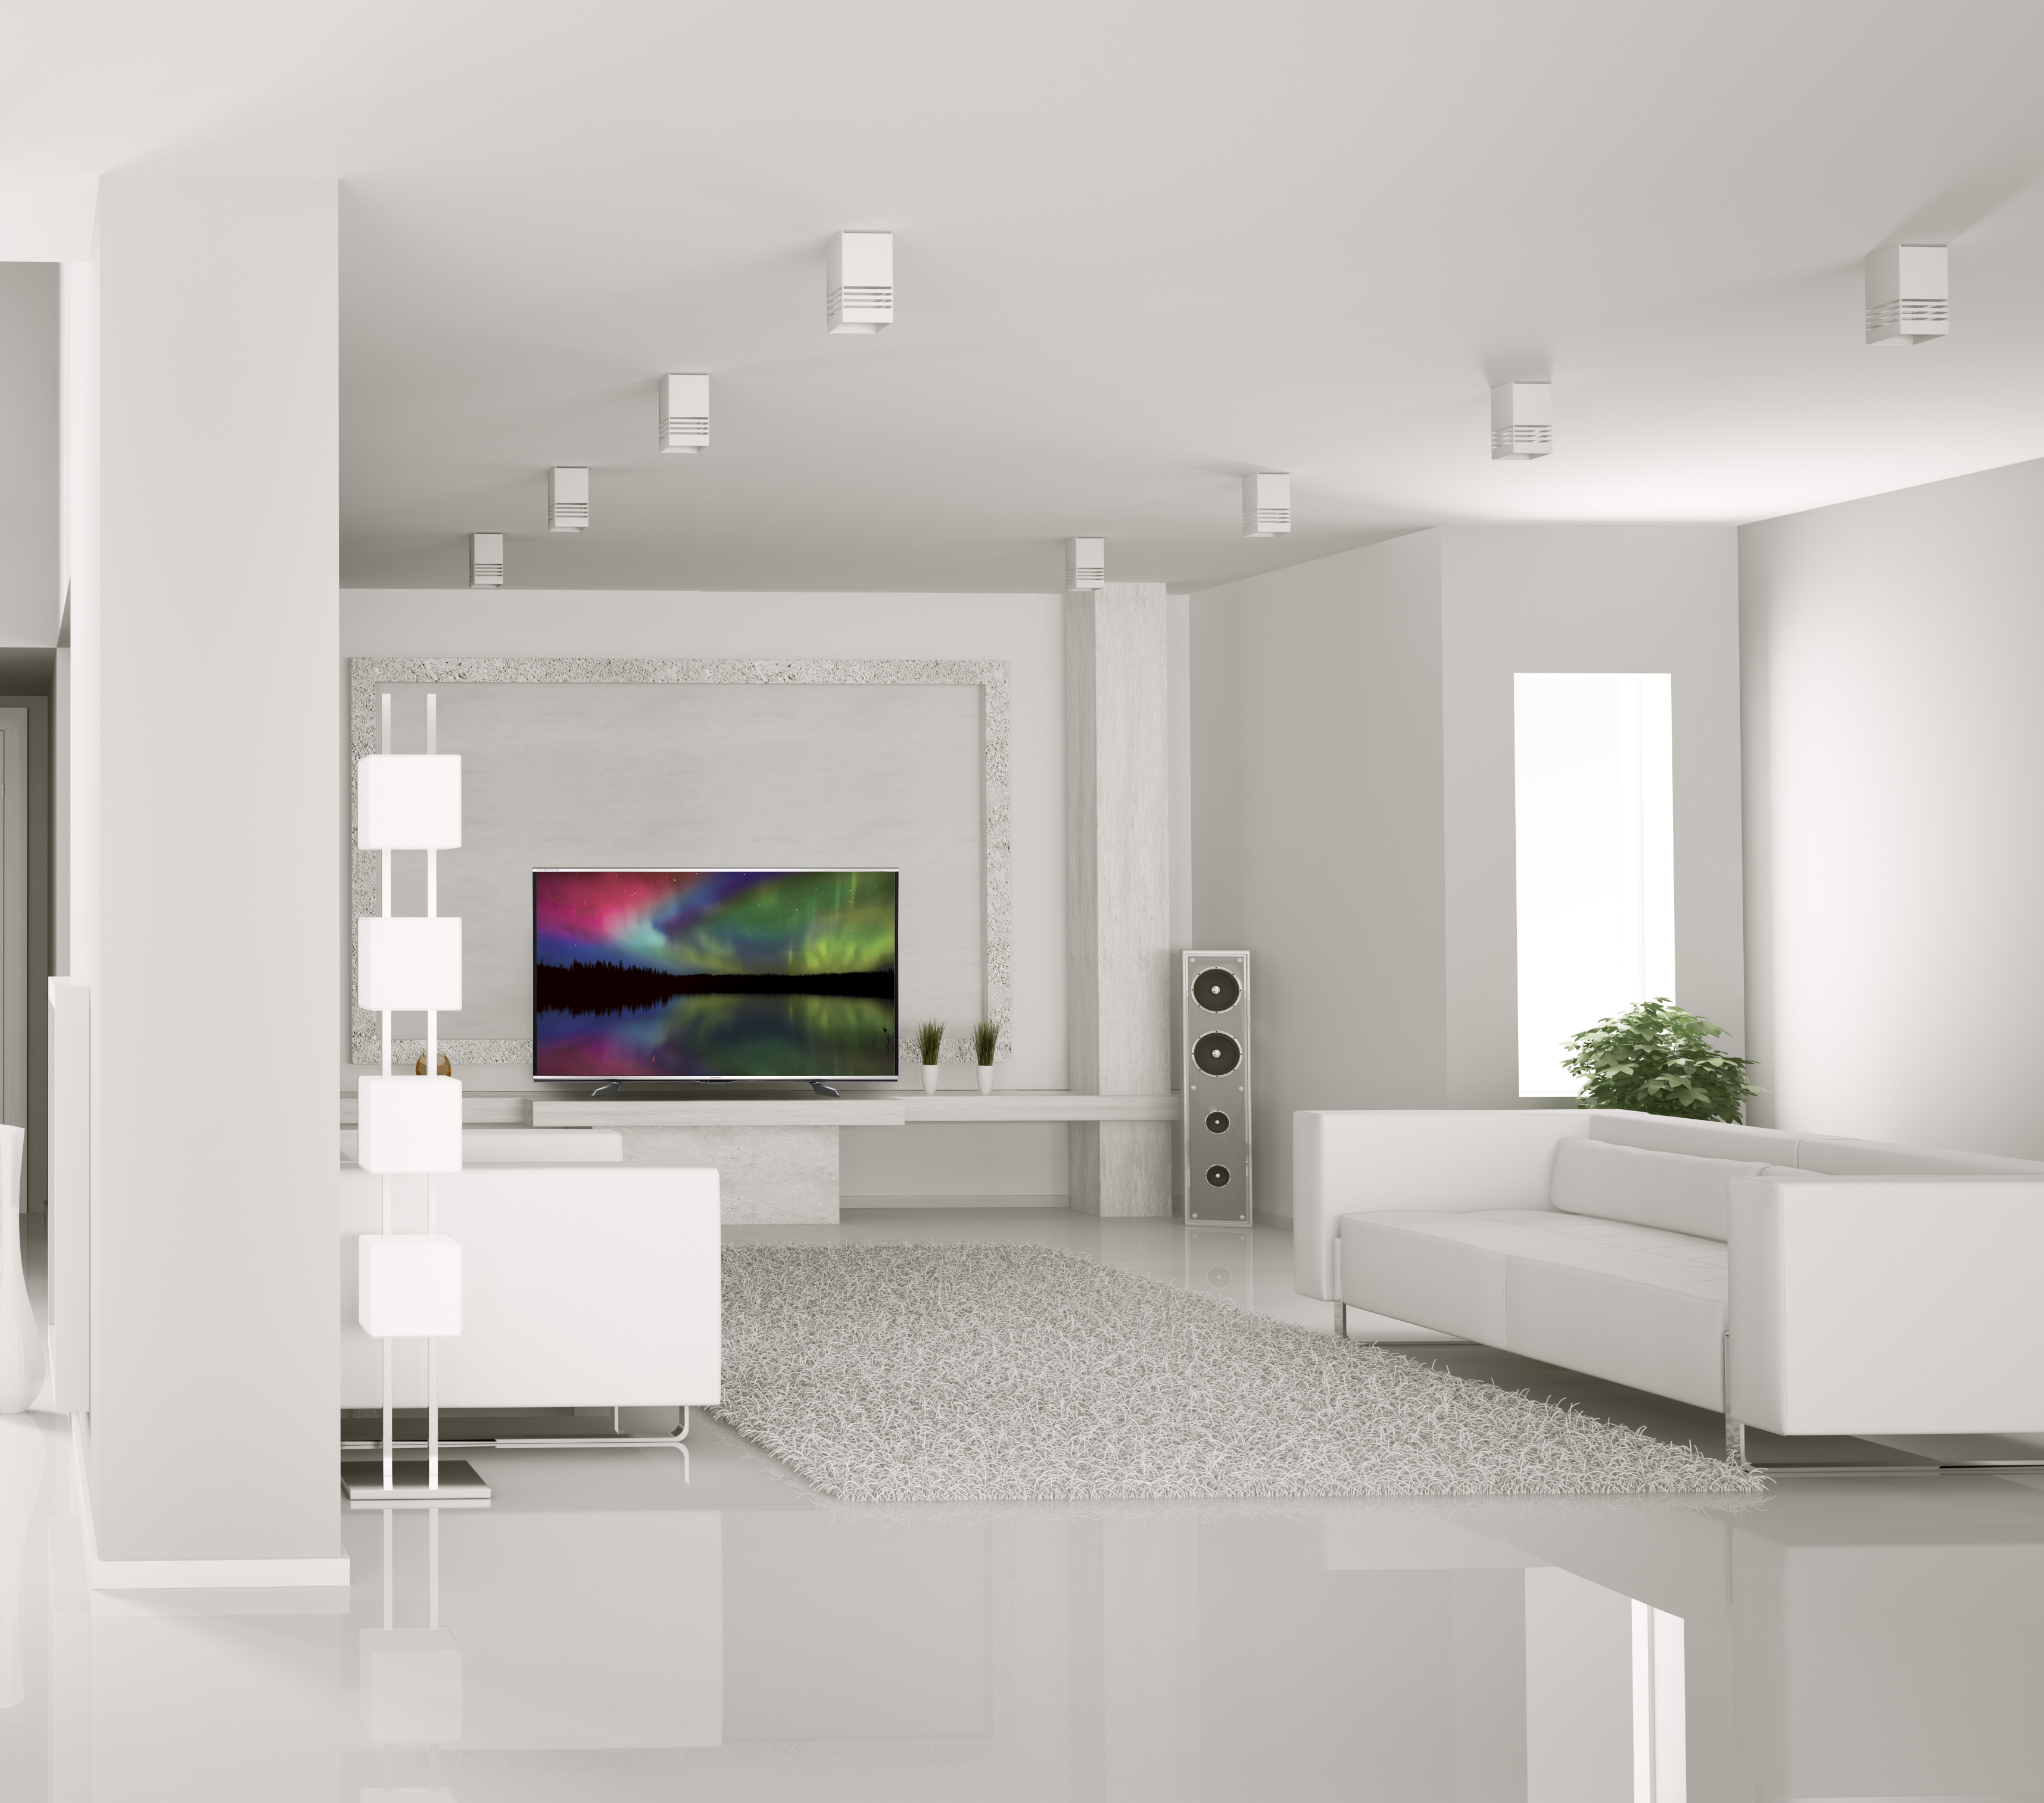 WHITE ROOM D Onstand Z0ltan77